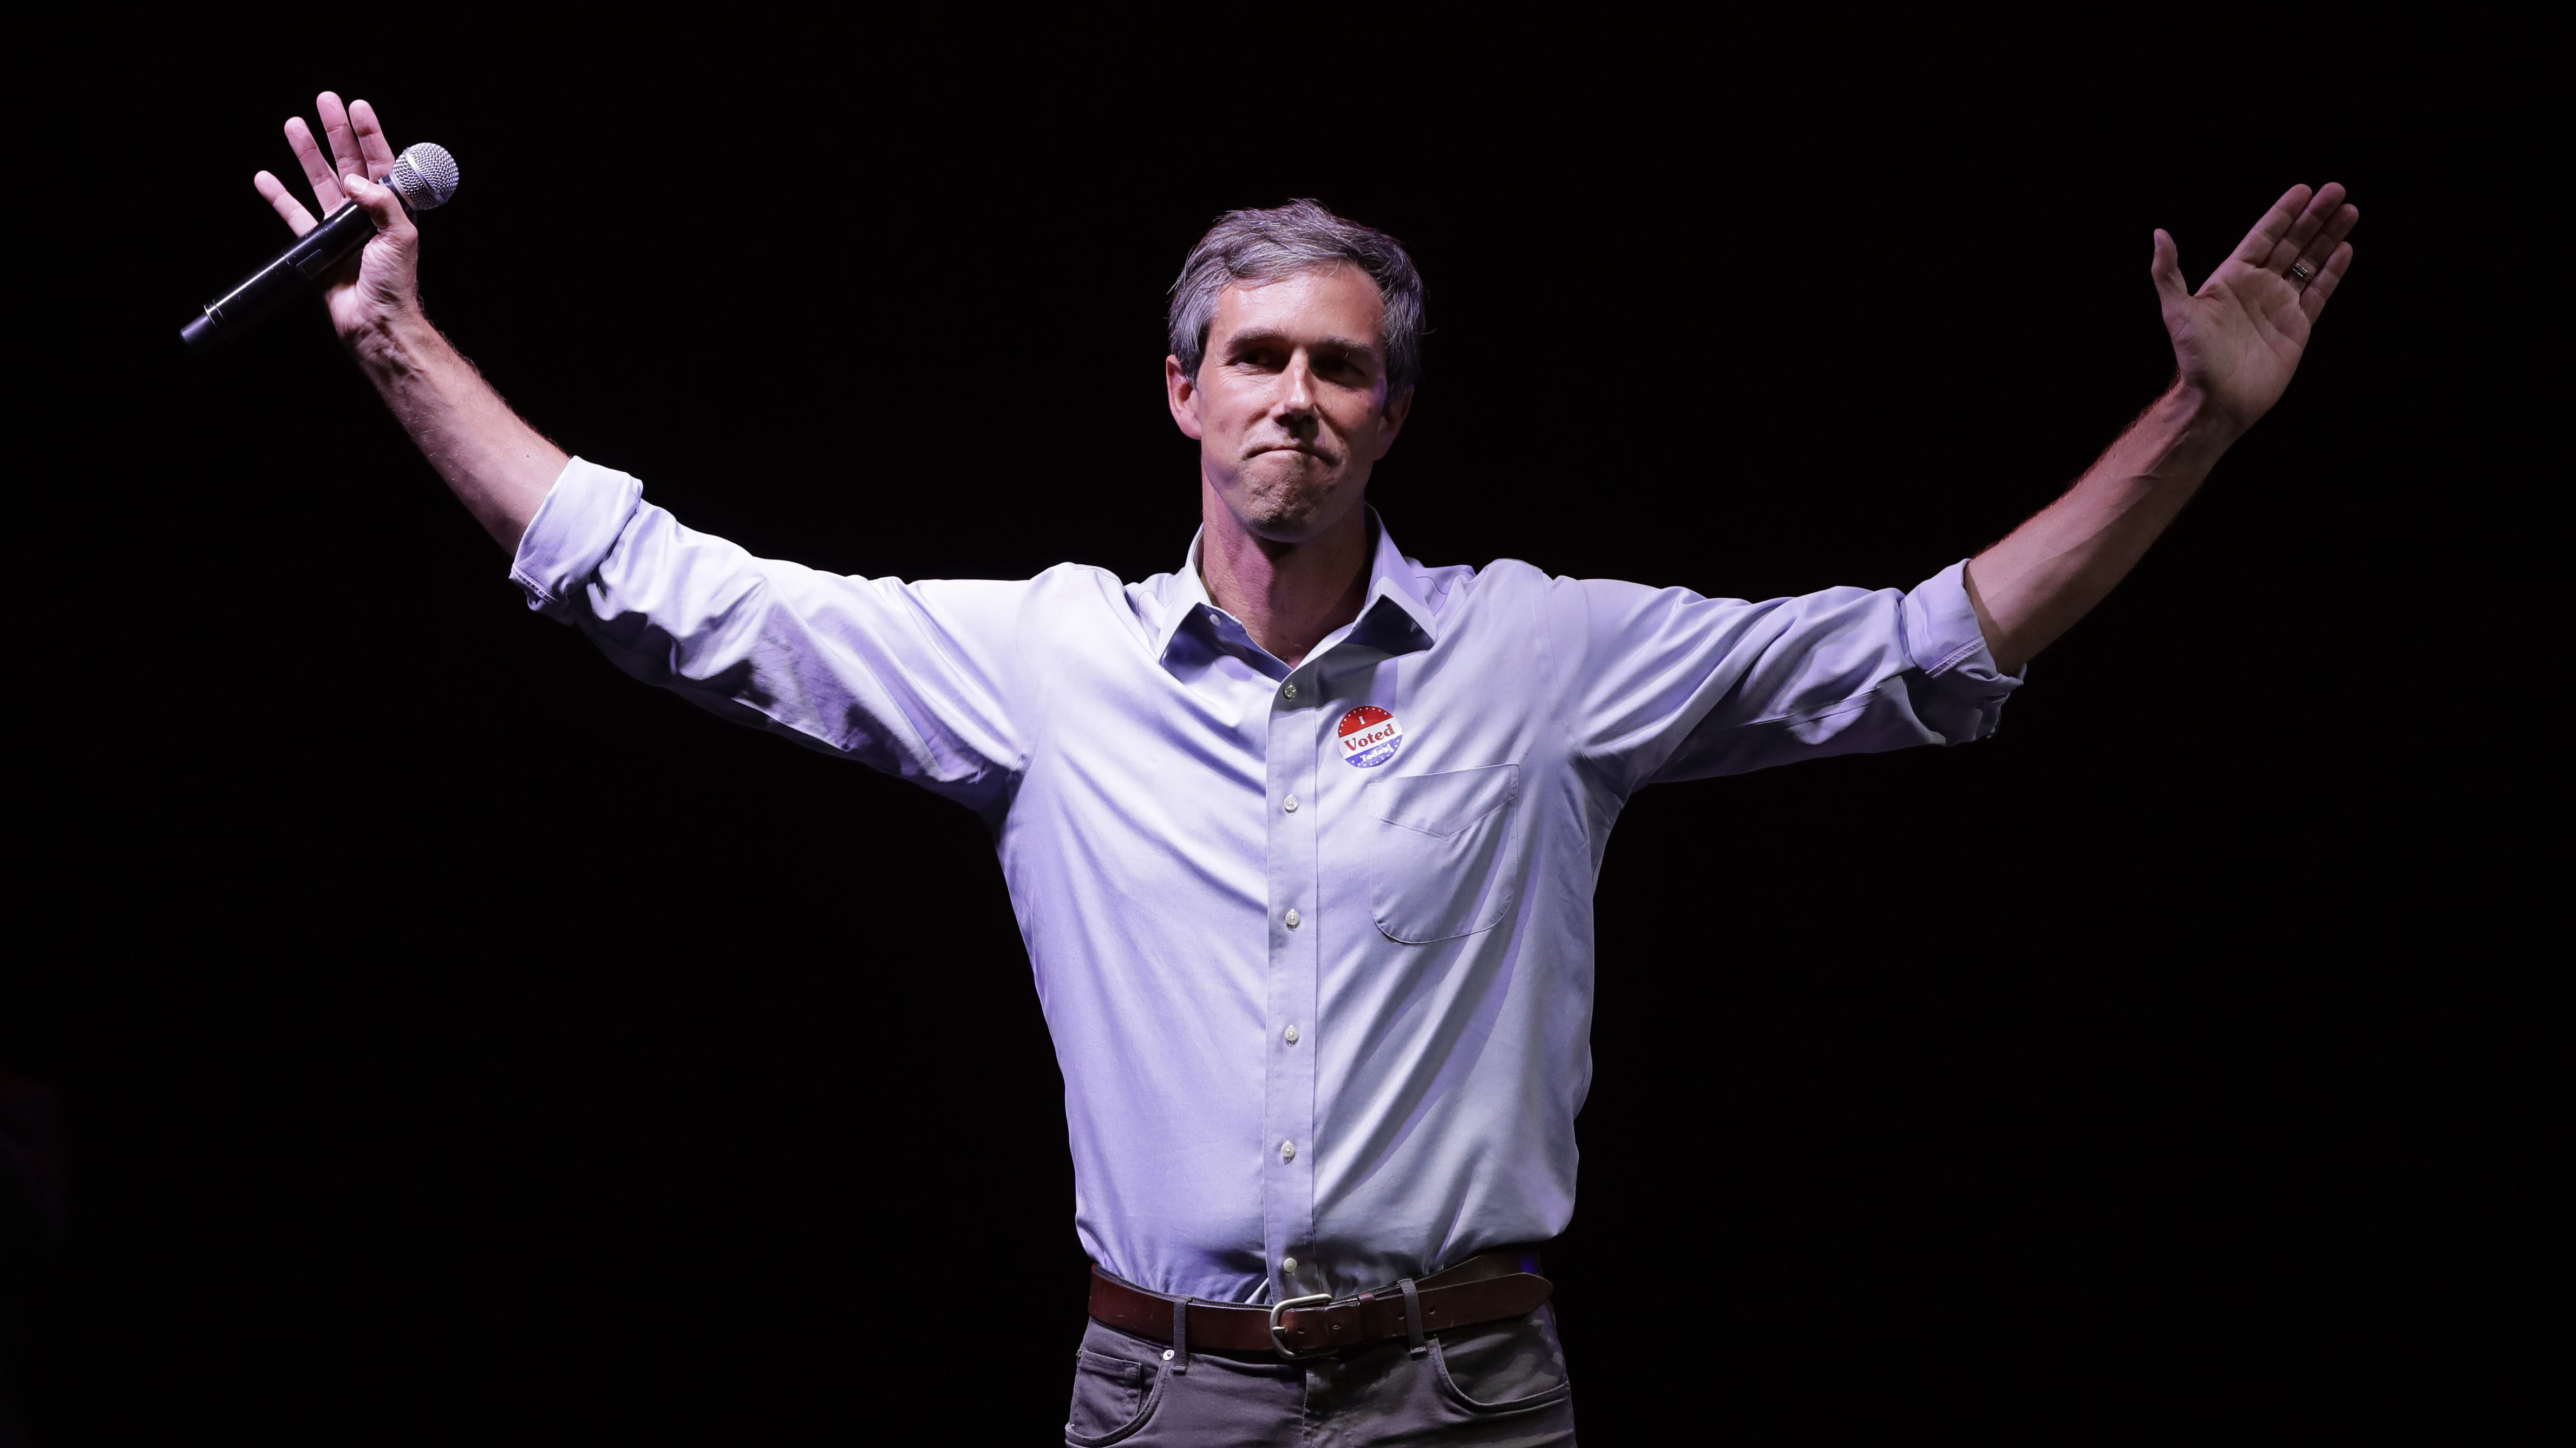 The enthusiasm generated by former three-term Rep. Beto O'Rourke may seem reminiscent of another politician who had only spent a few years in Congress before running for the White House — President Barack Obama